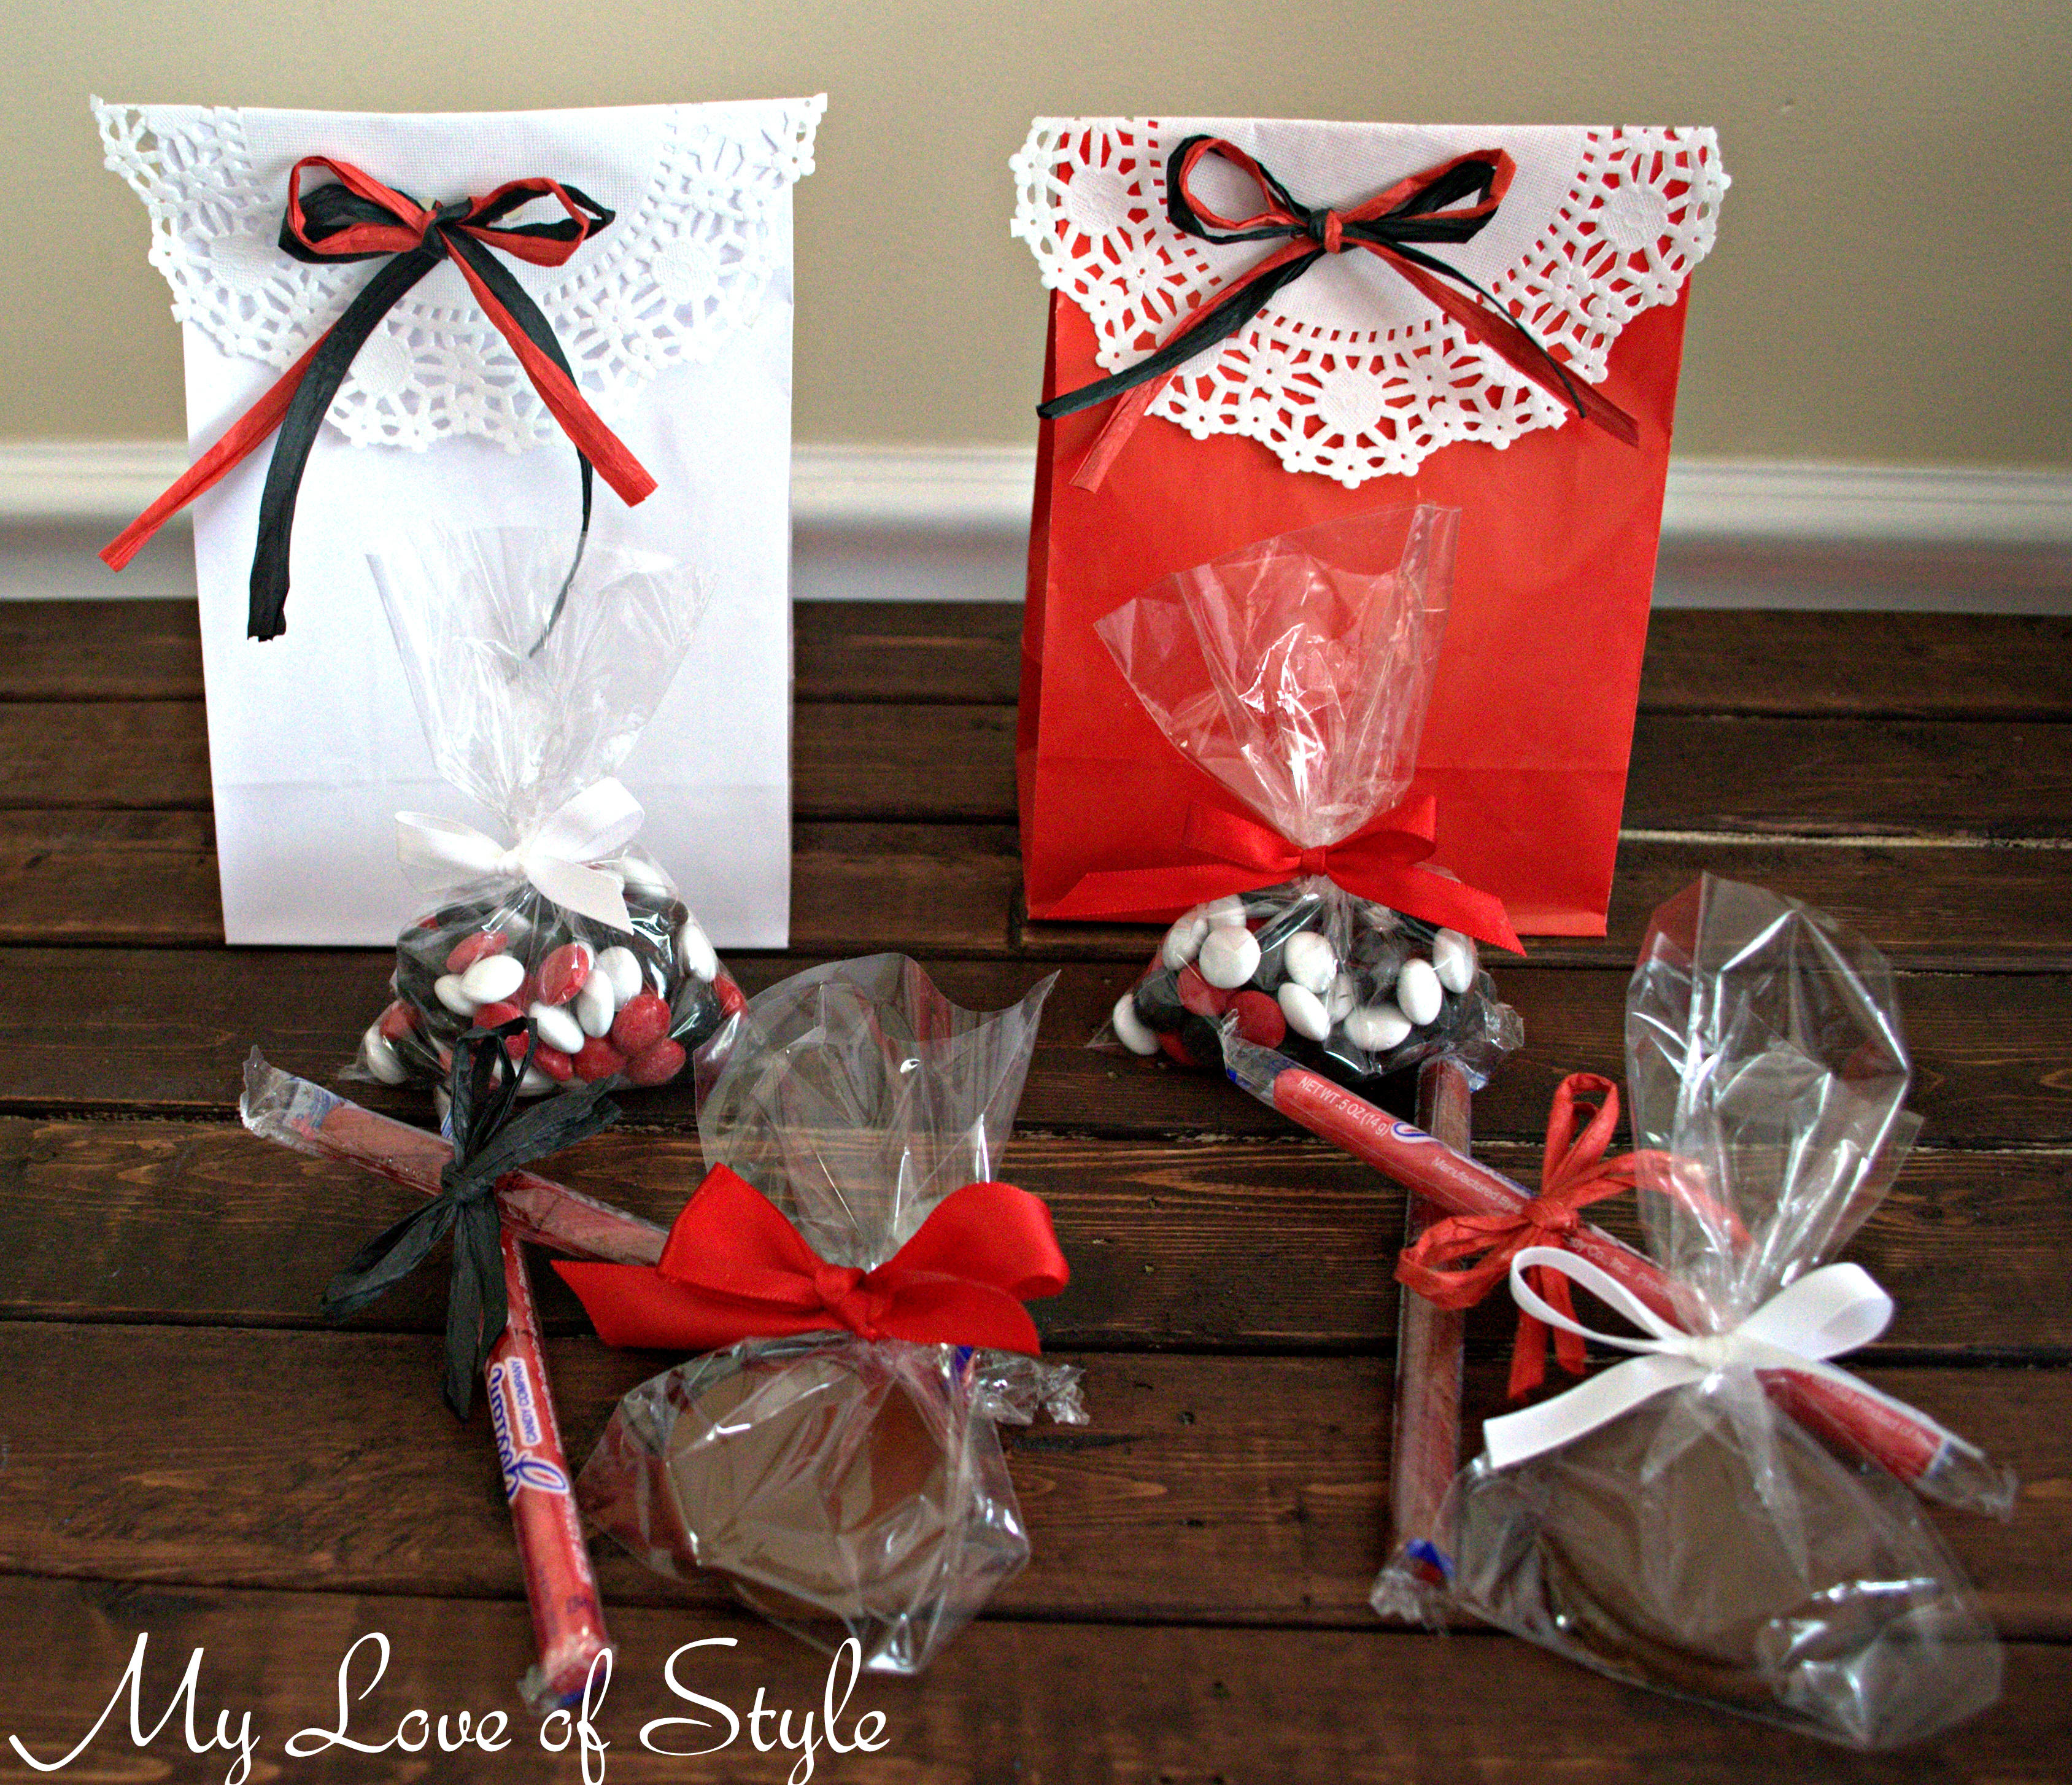 Diy Hockey Inspired Party Favors My Love Of Style My Love Of Style